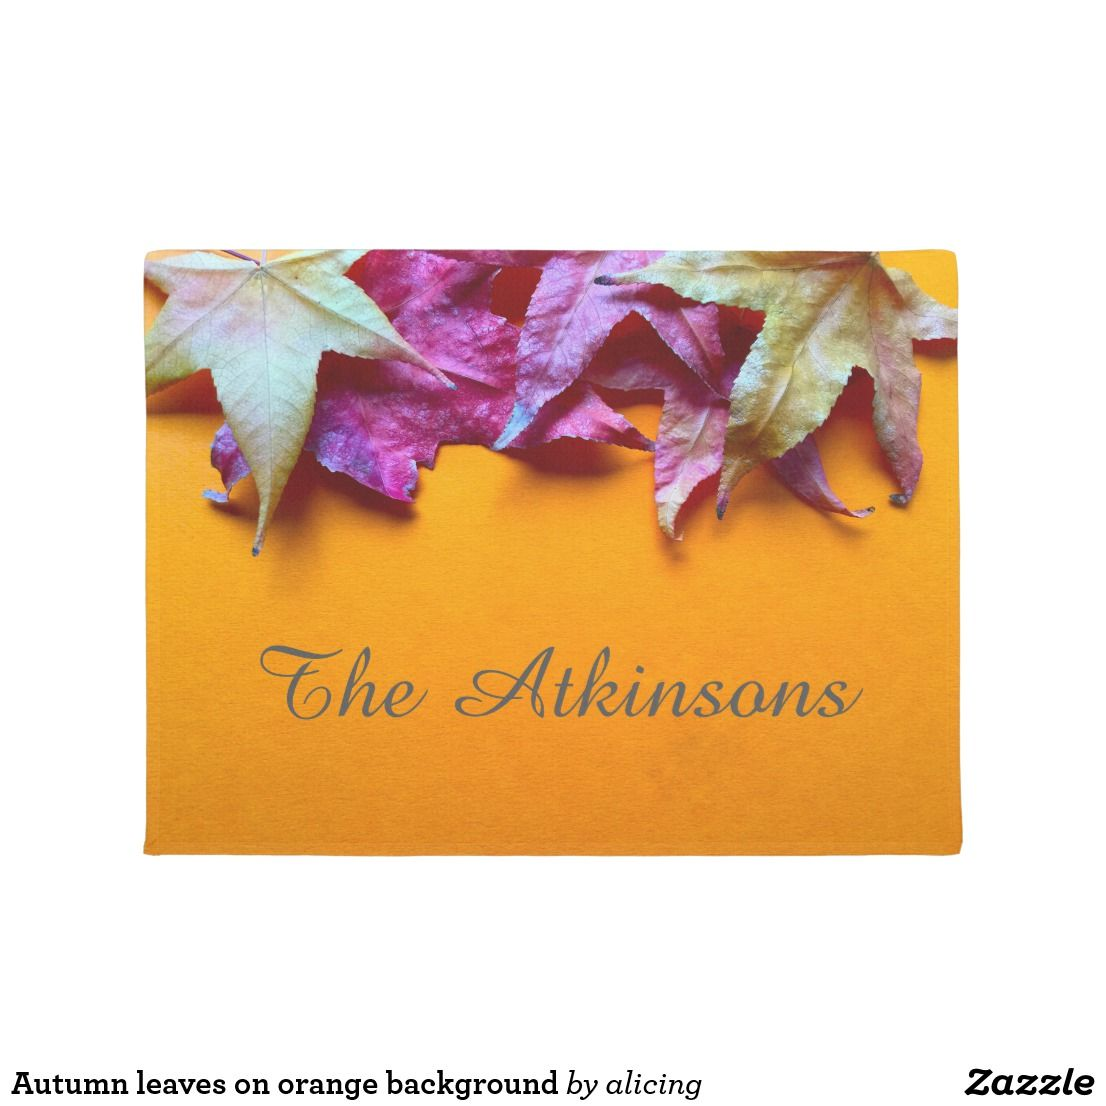 Autumn leaves on orange background welcome your fall guests with autumn leaves on orange background welcome your fall guests with a pretty new doormat kristyandbryce Images